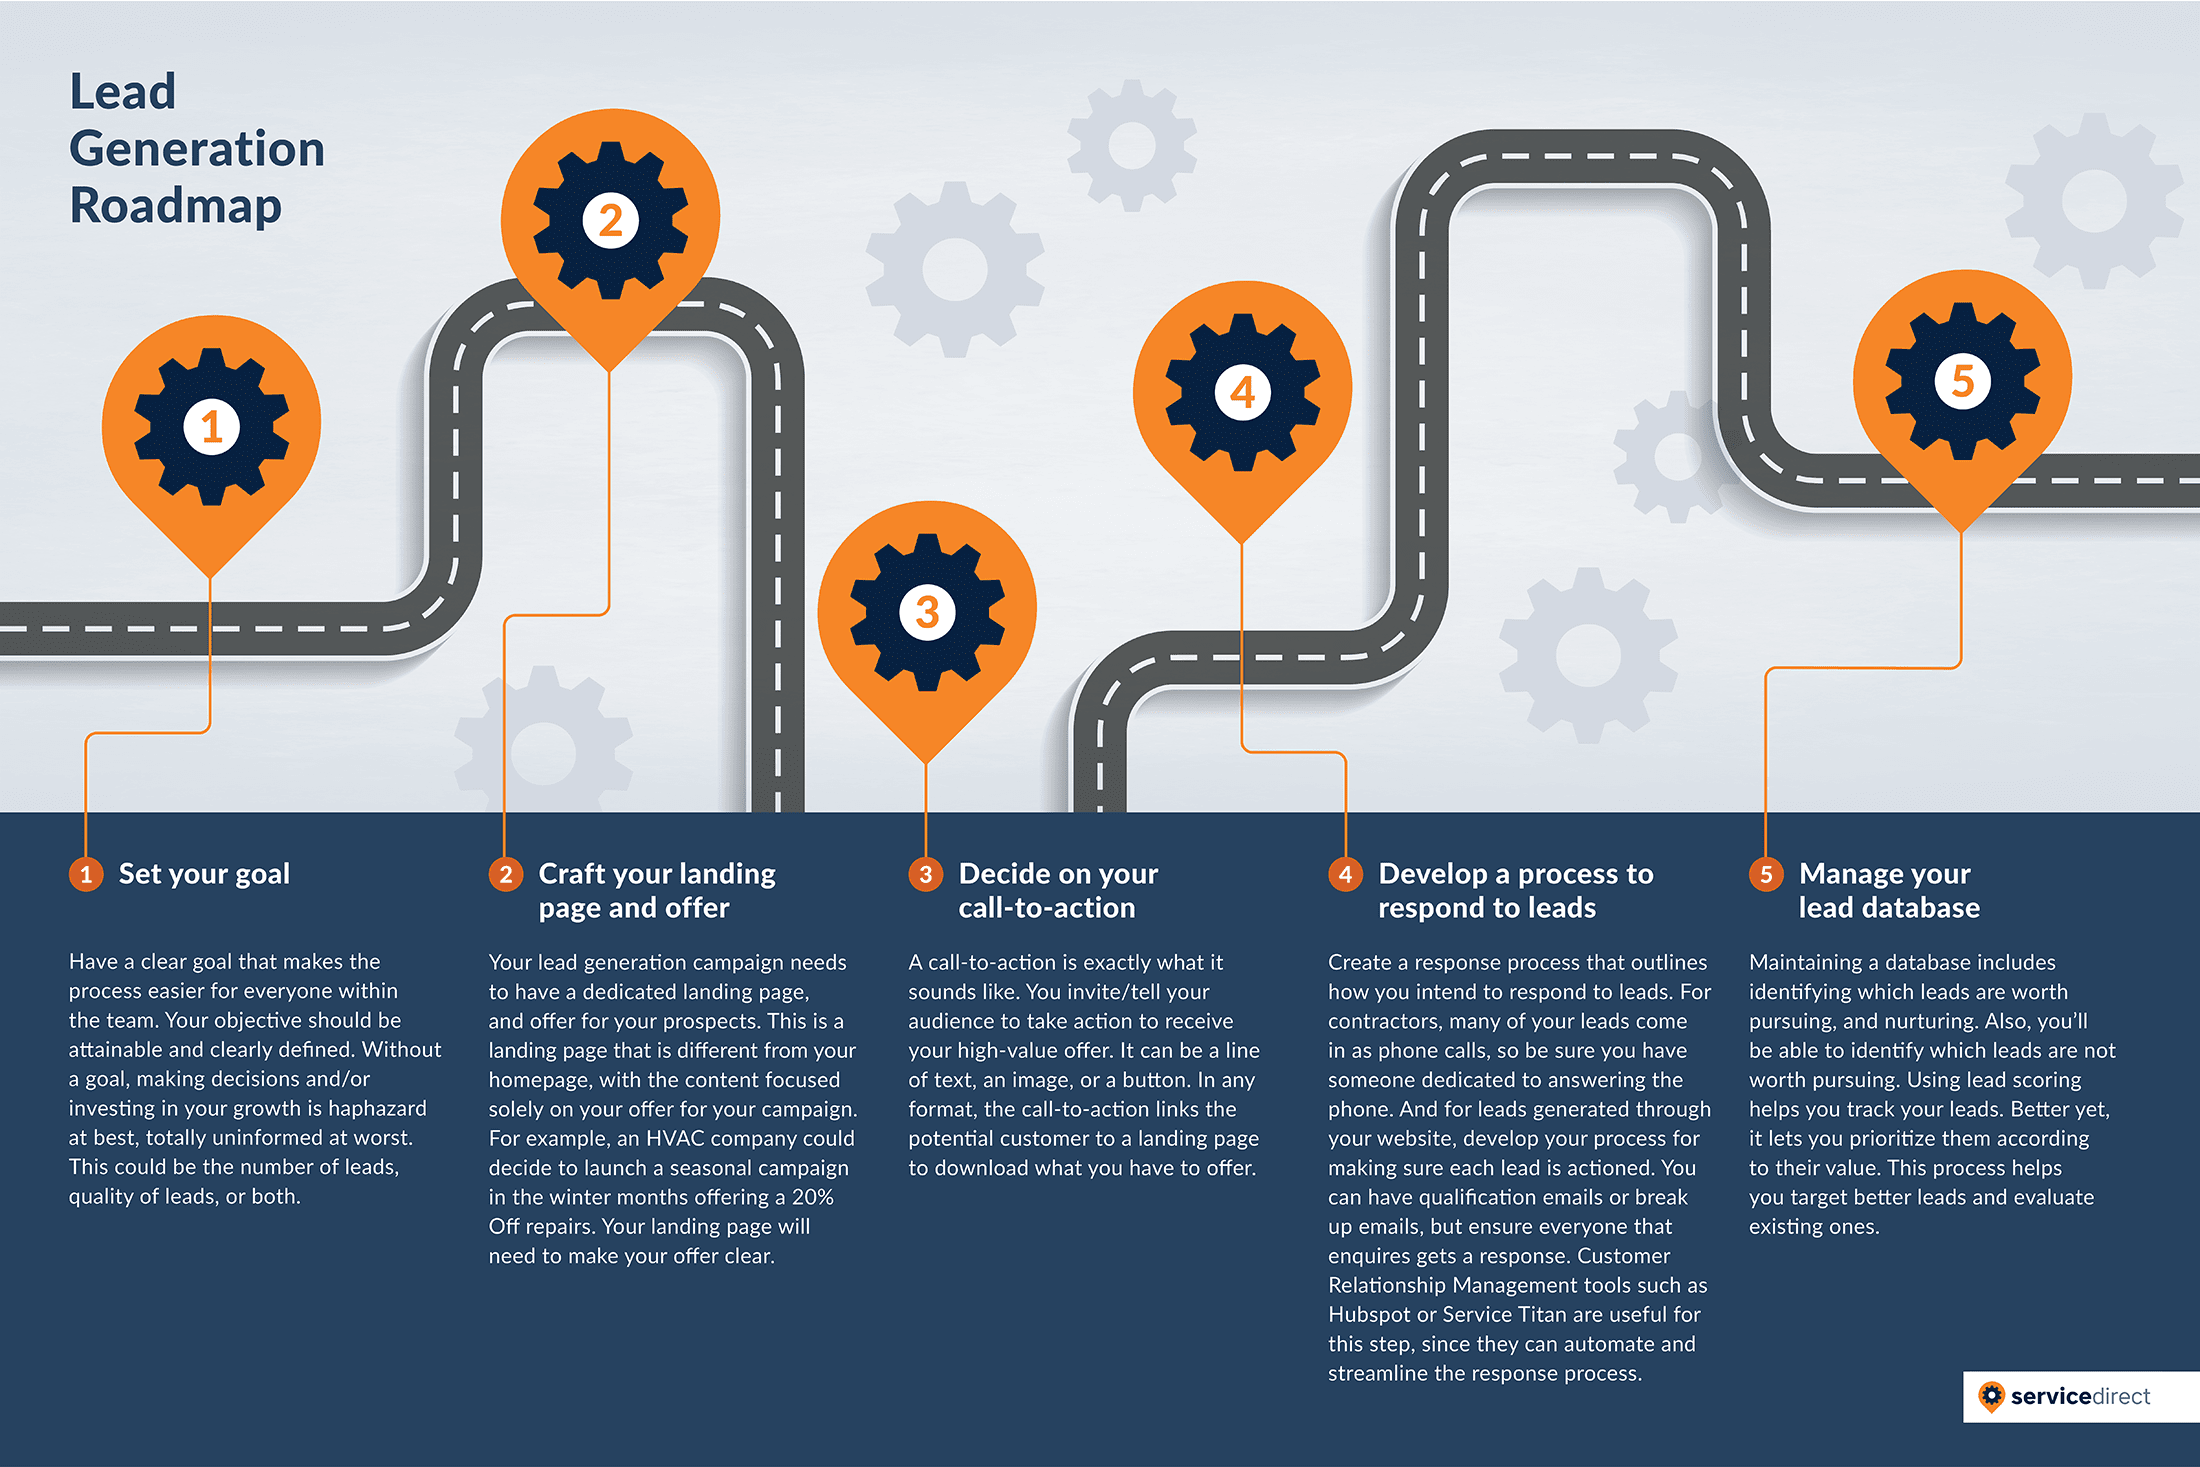 Home Contracting Company Lead Generation Roadmap